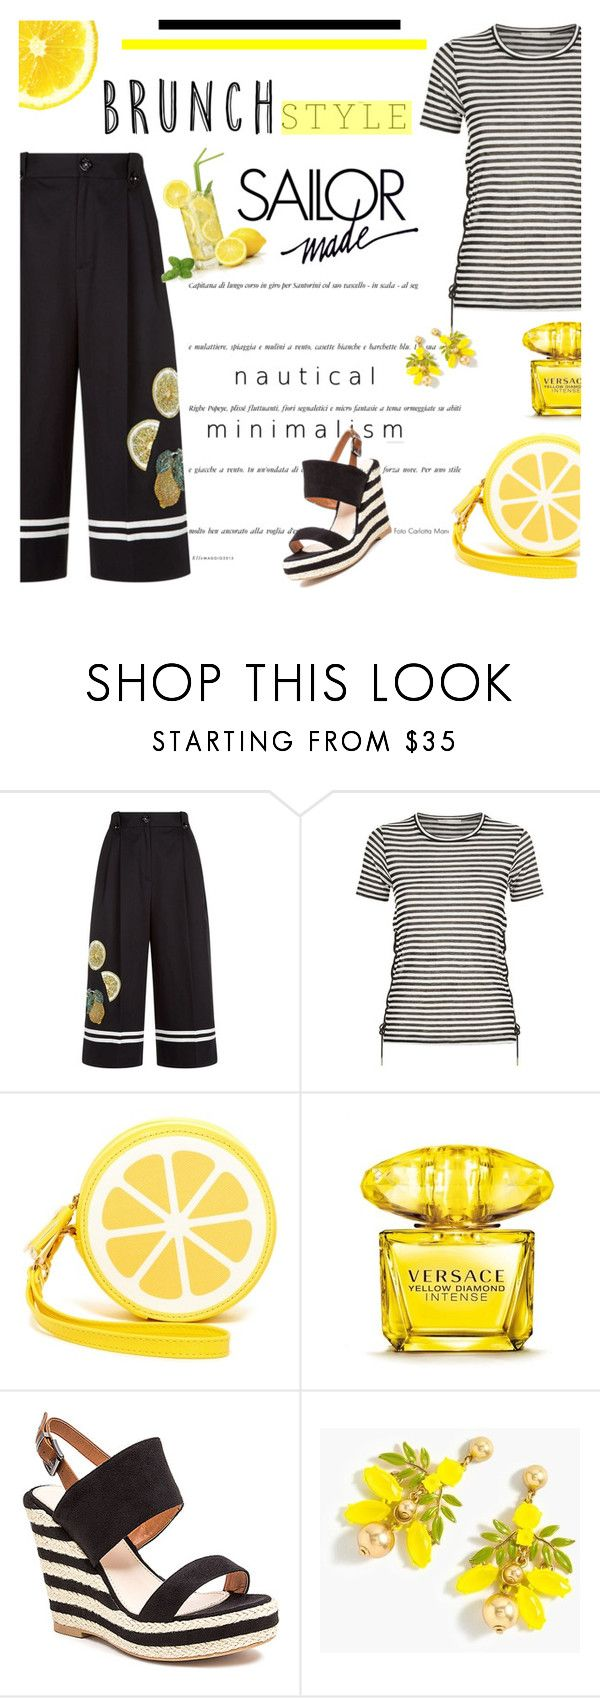 """Mother's Day Brunch Goals"" by lacas ❤ liked on Polyvore featuring Dolce&Gabbana, Maje, Shiraleah, Versace, French Blu, J.Crew and brunchgoals"